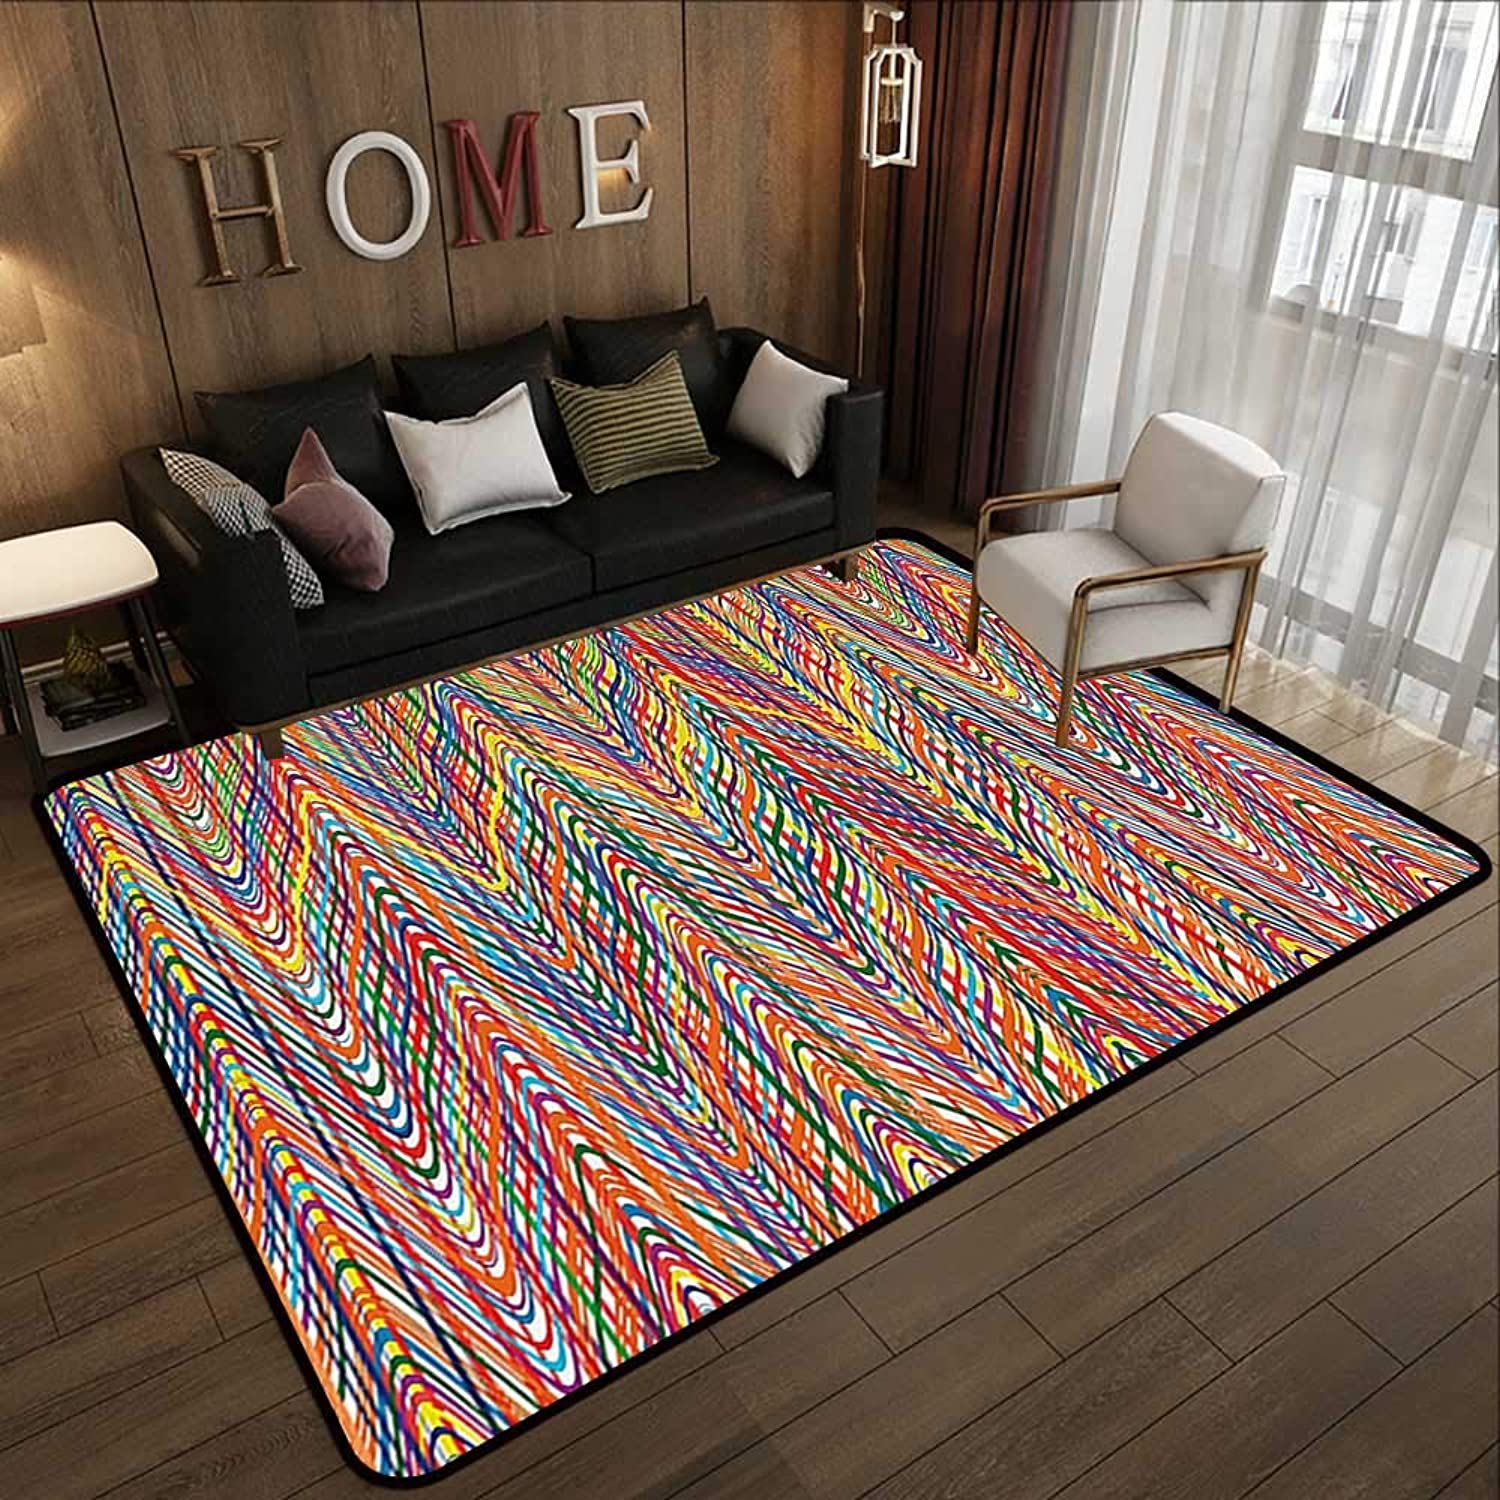 Carpet mat,Abstract,colorful Zigzag Pattern with Mixed Contrast Messy Tone Lines Modern Stripes Image,Multicolor 47 x 59  Floor Mat Entrance Doormat